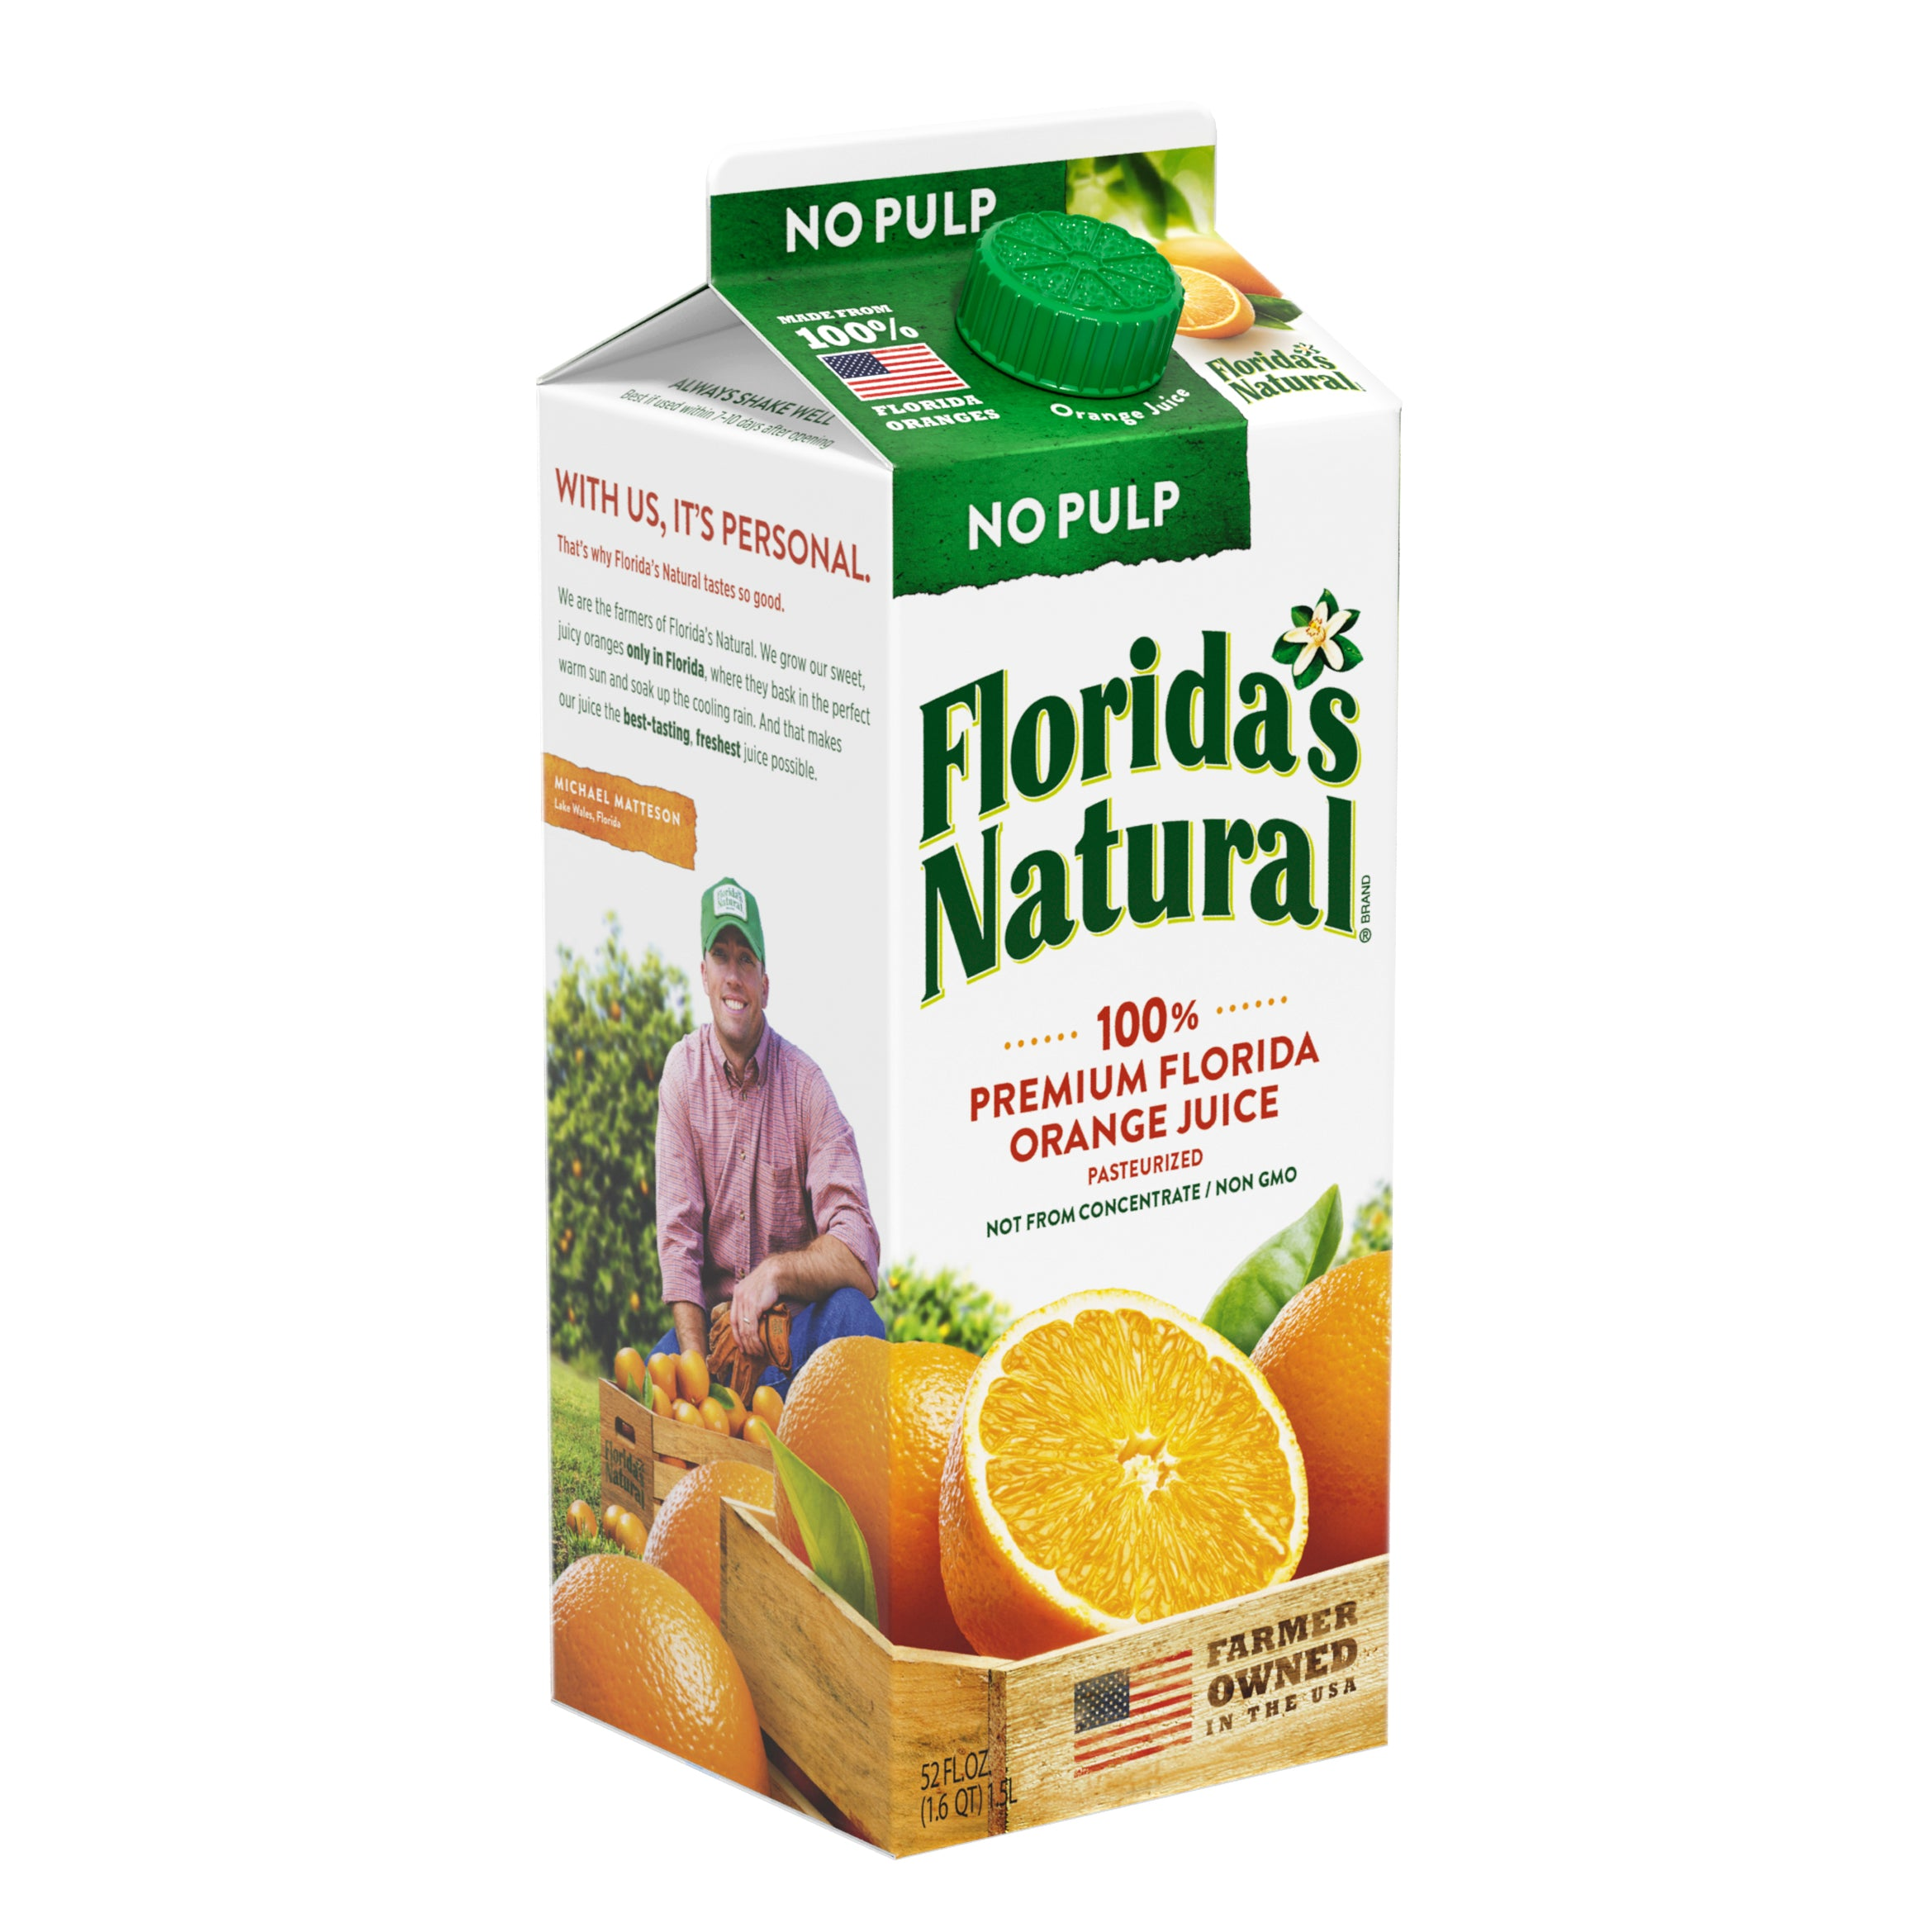 FLORIDA'S NATURAL 100% ORANGE JUICE NO PULP 52 OZ